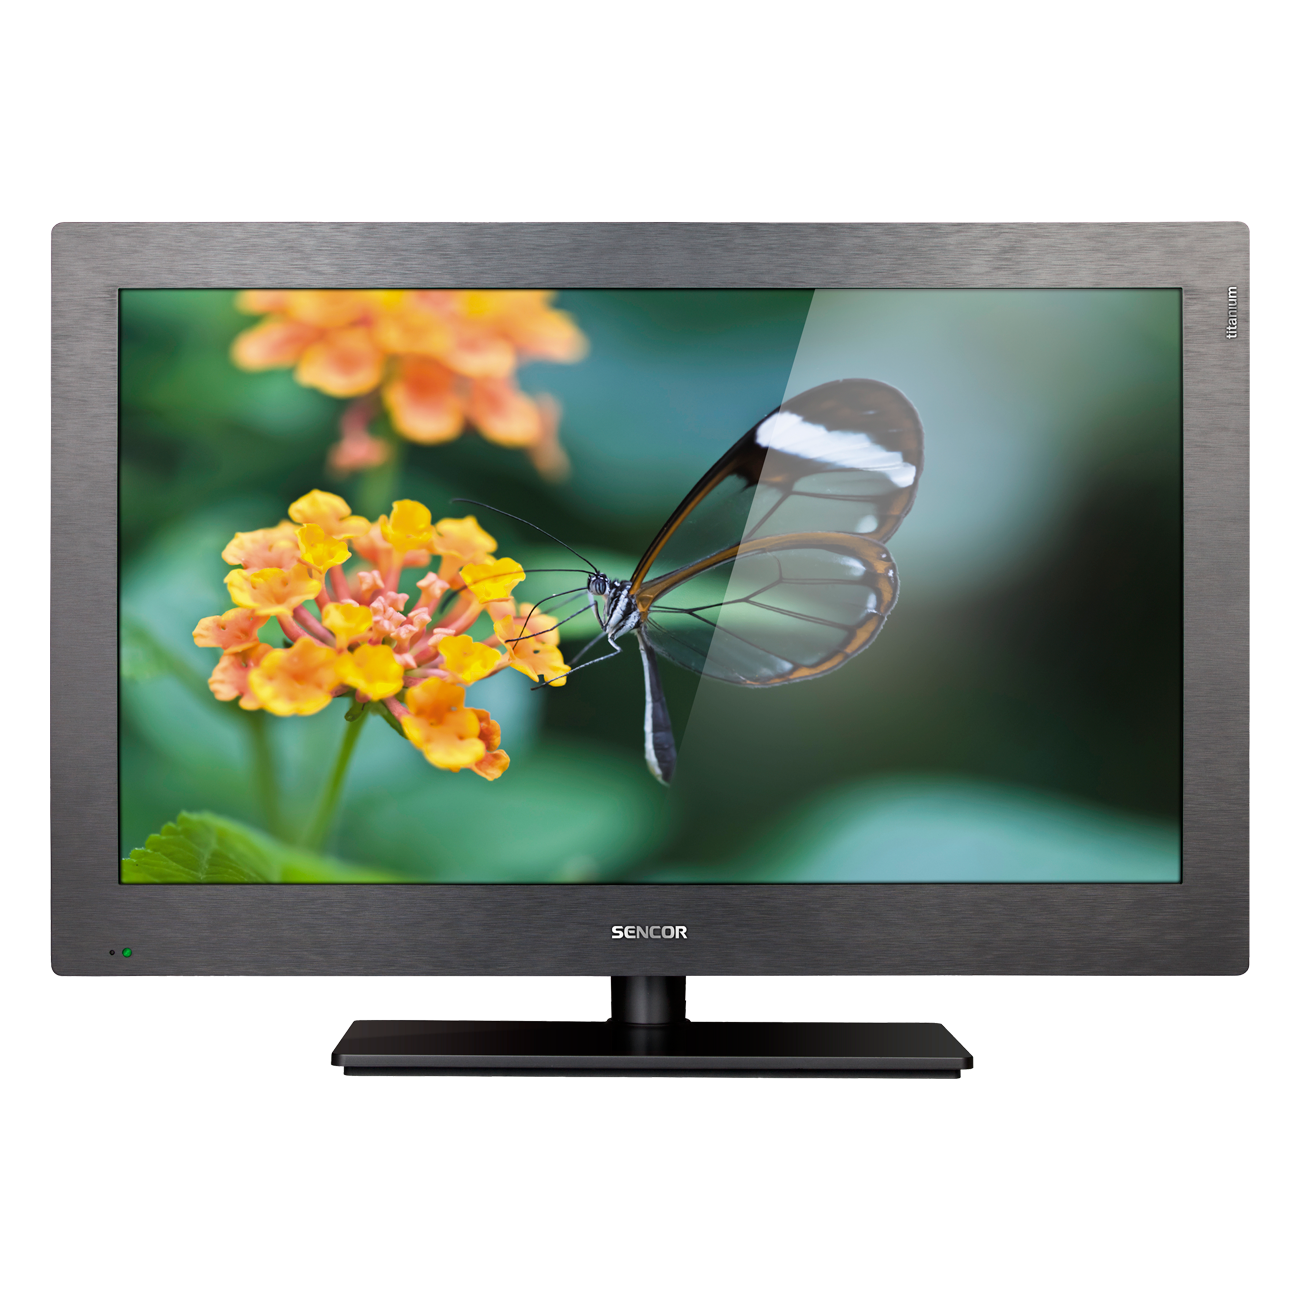 SLE 3251M4 titanium LCD Television with LED Backlight